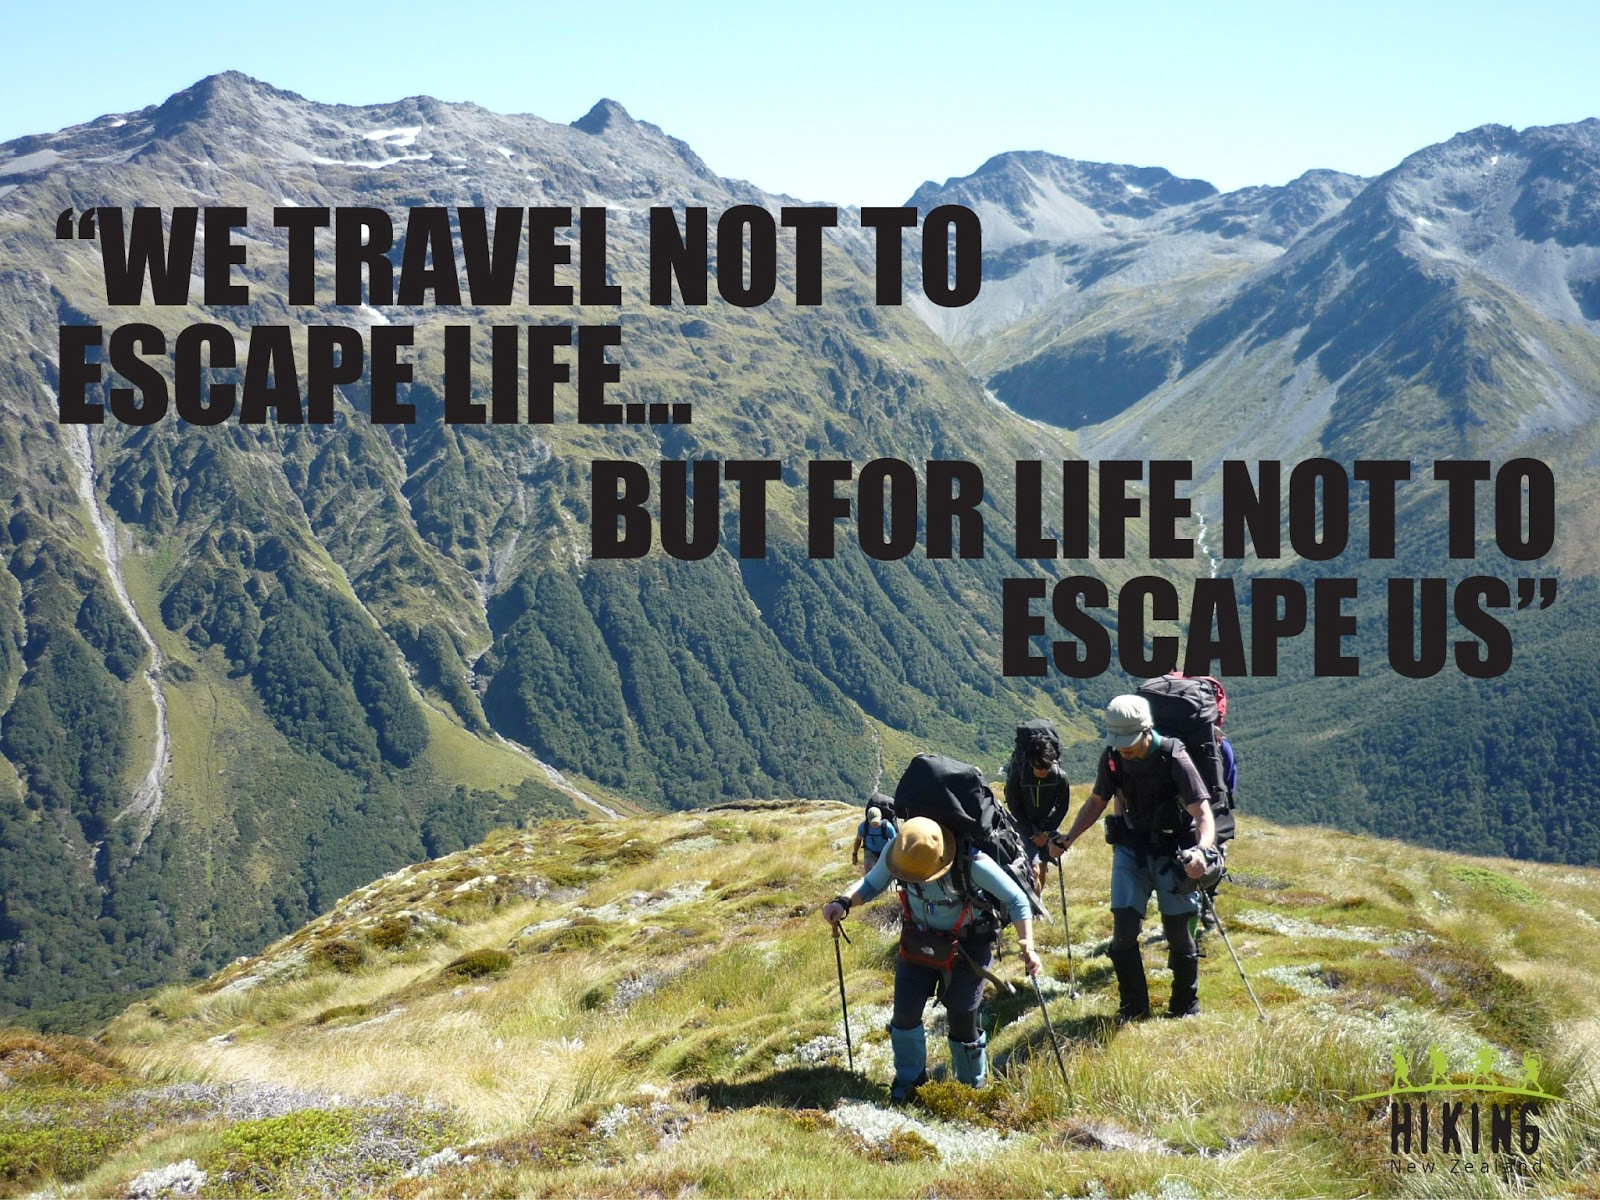 Inspirational Travel and Walking Quotes | Hiking NZ